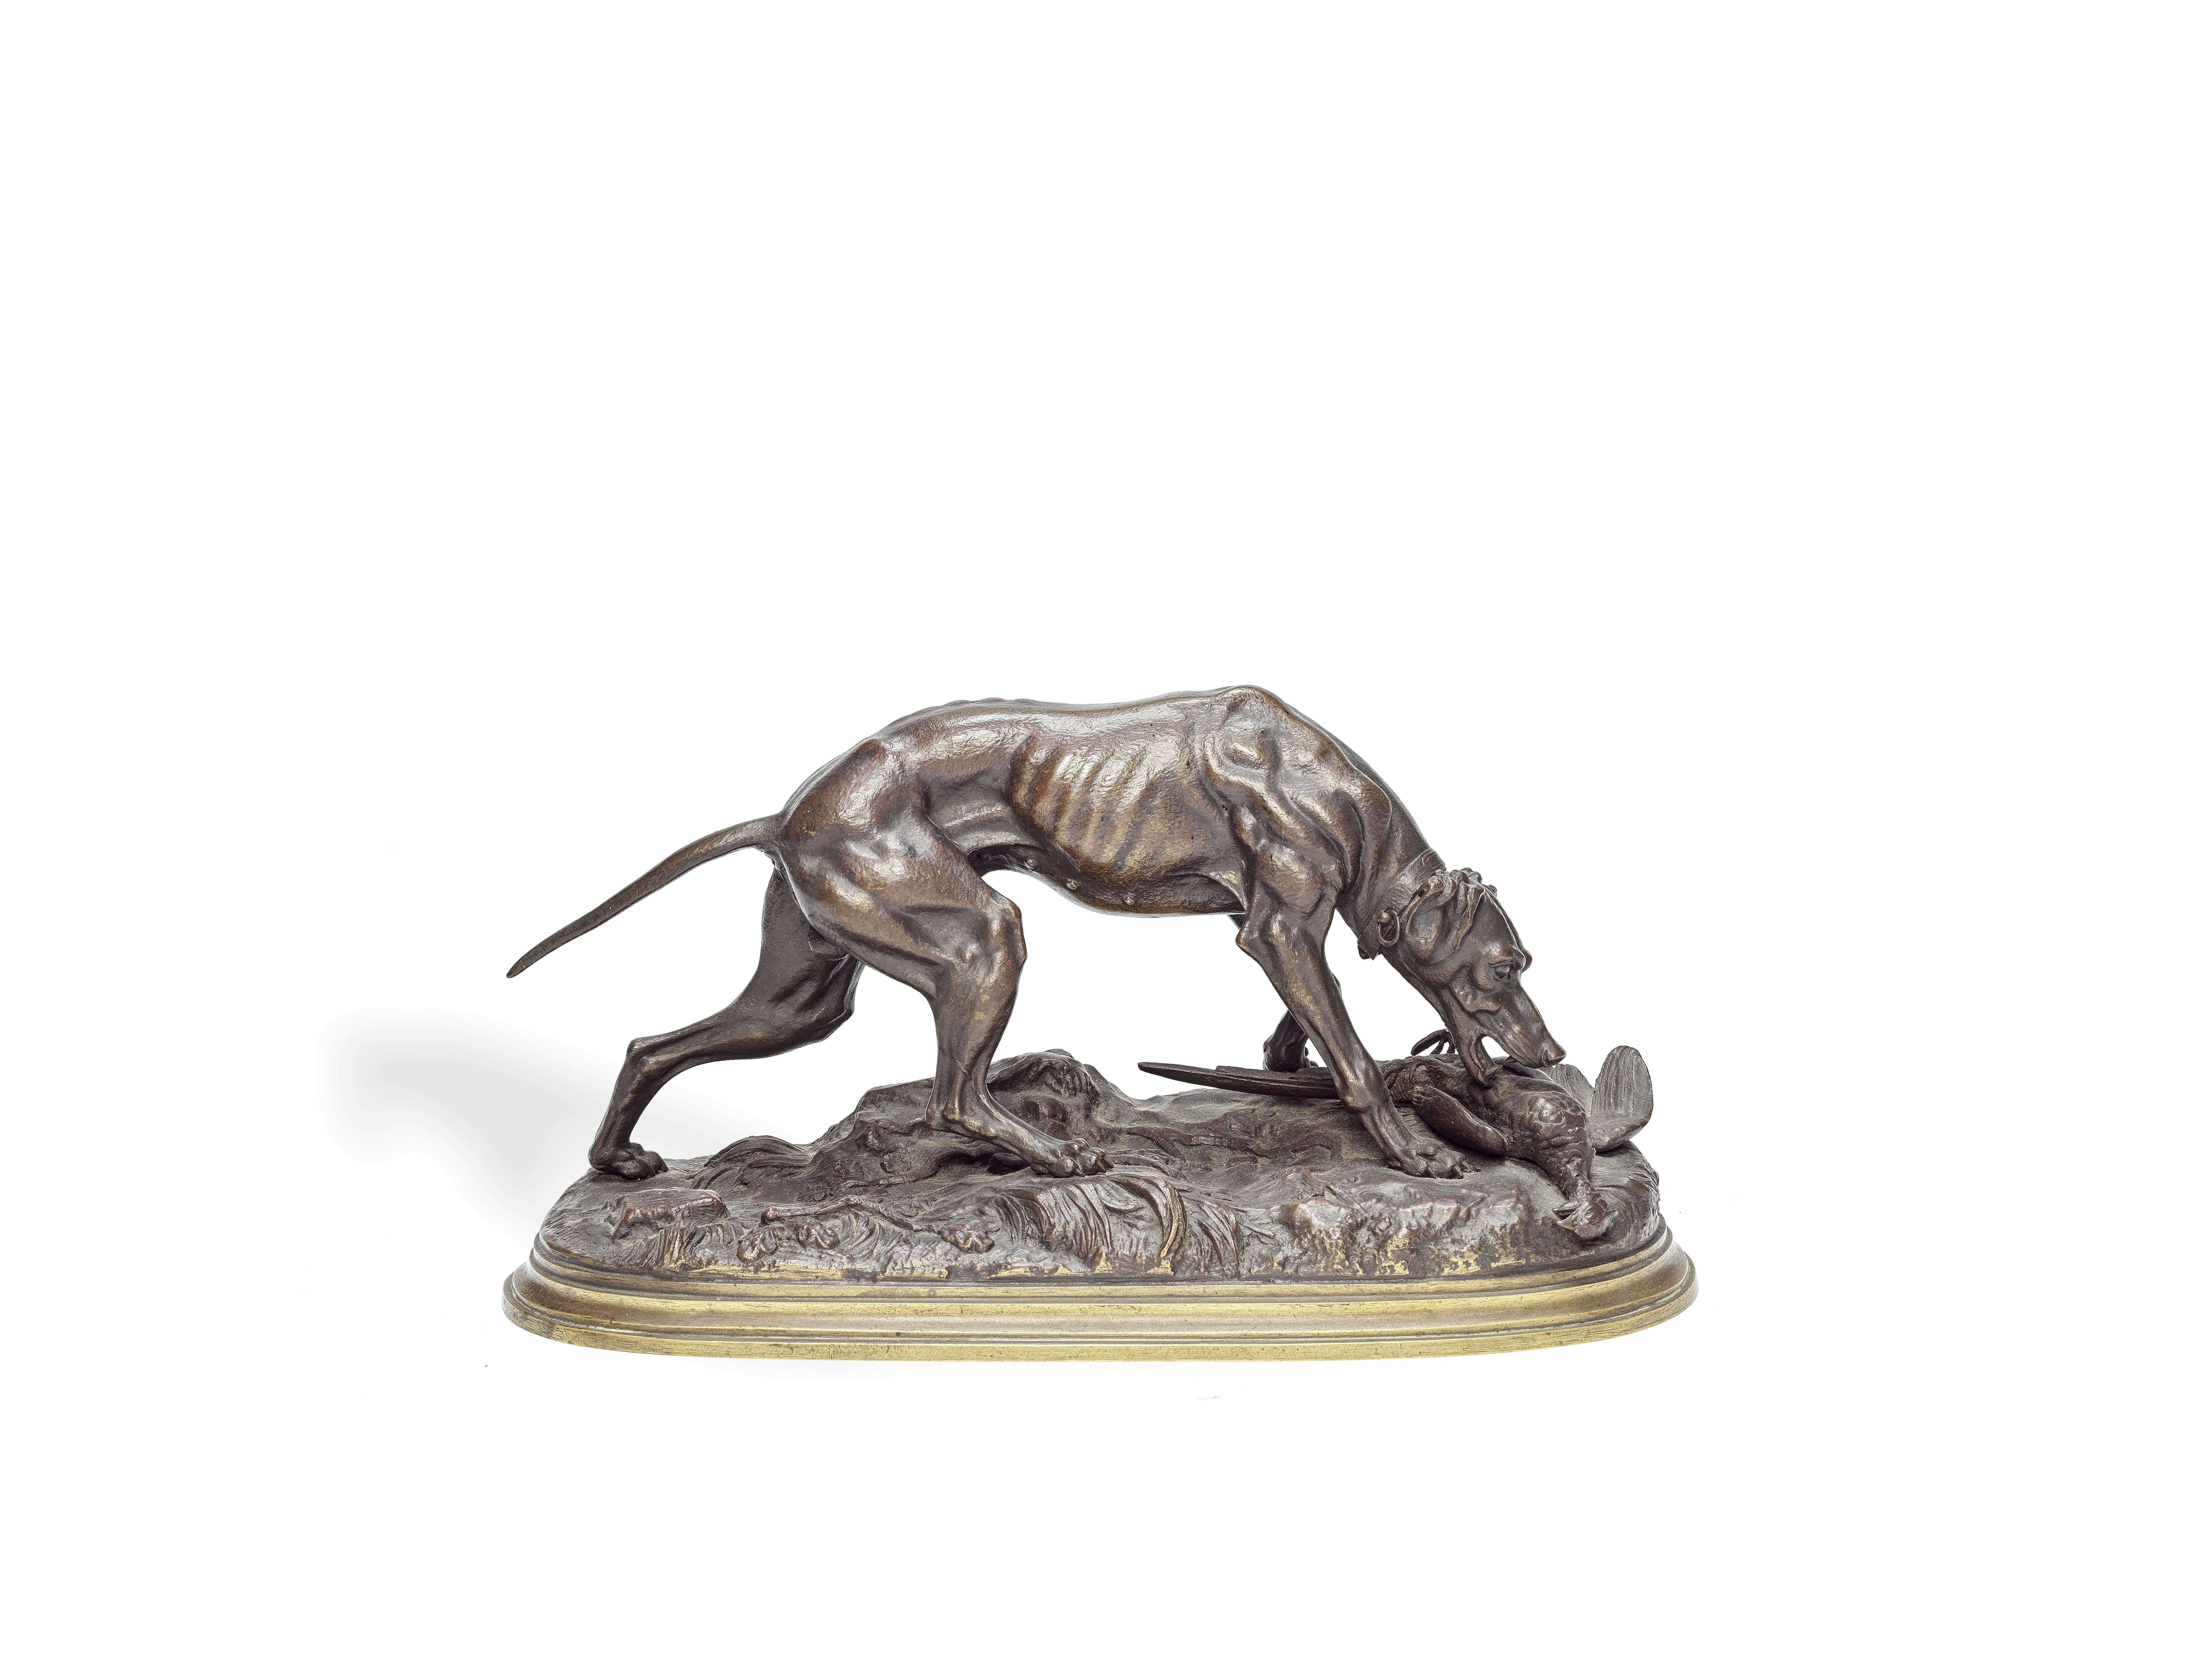 Jules Moigniez (French, 1835-1894): A patinated bronze model of a dog with a pheasant